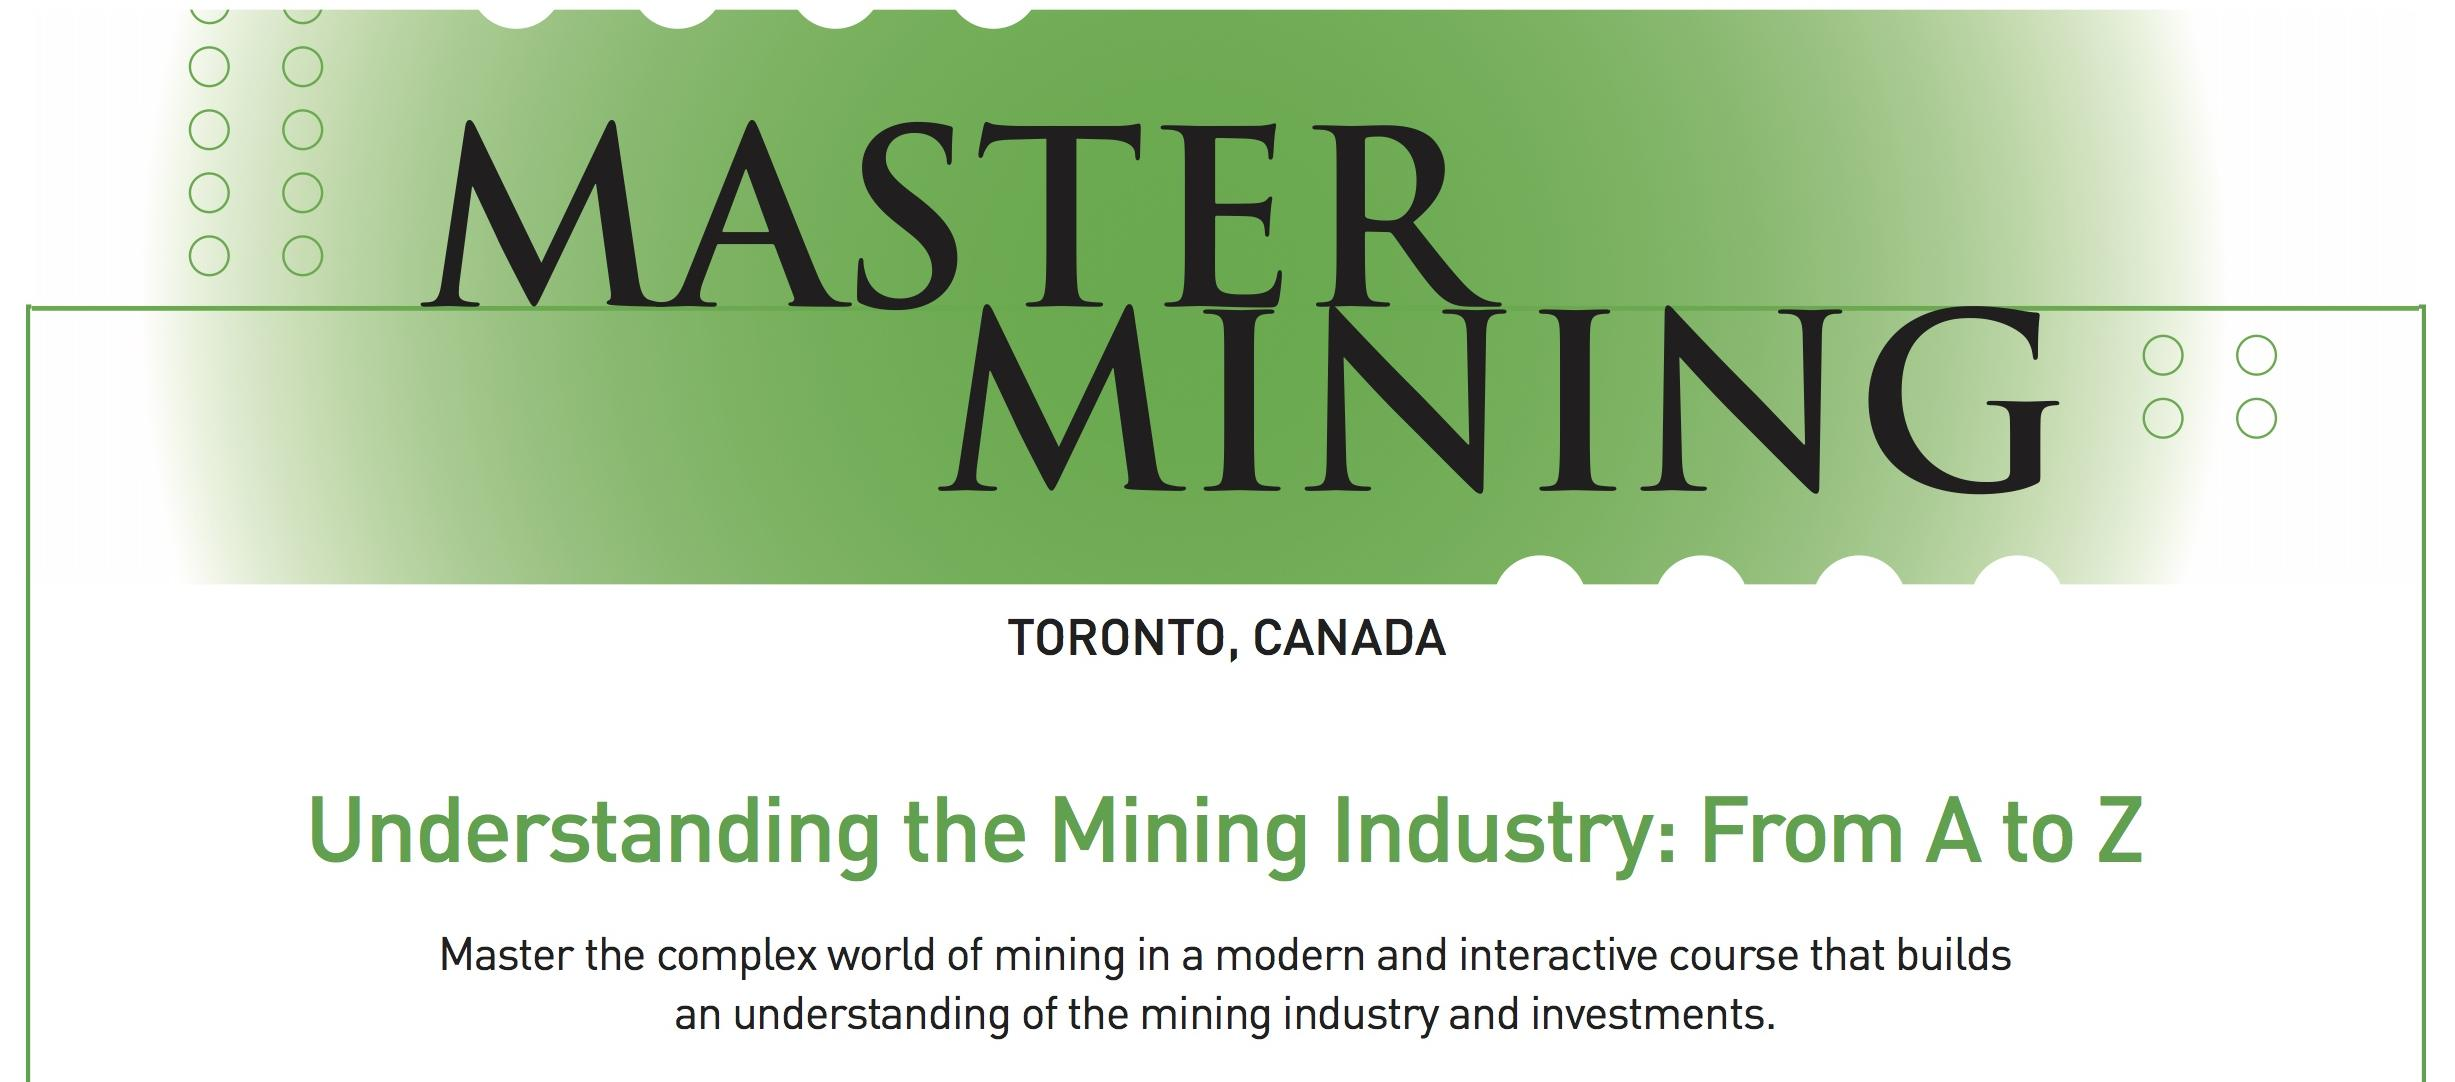 MASTERMINING: Understanding the Mining Industry From A to Z